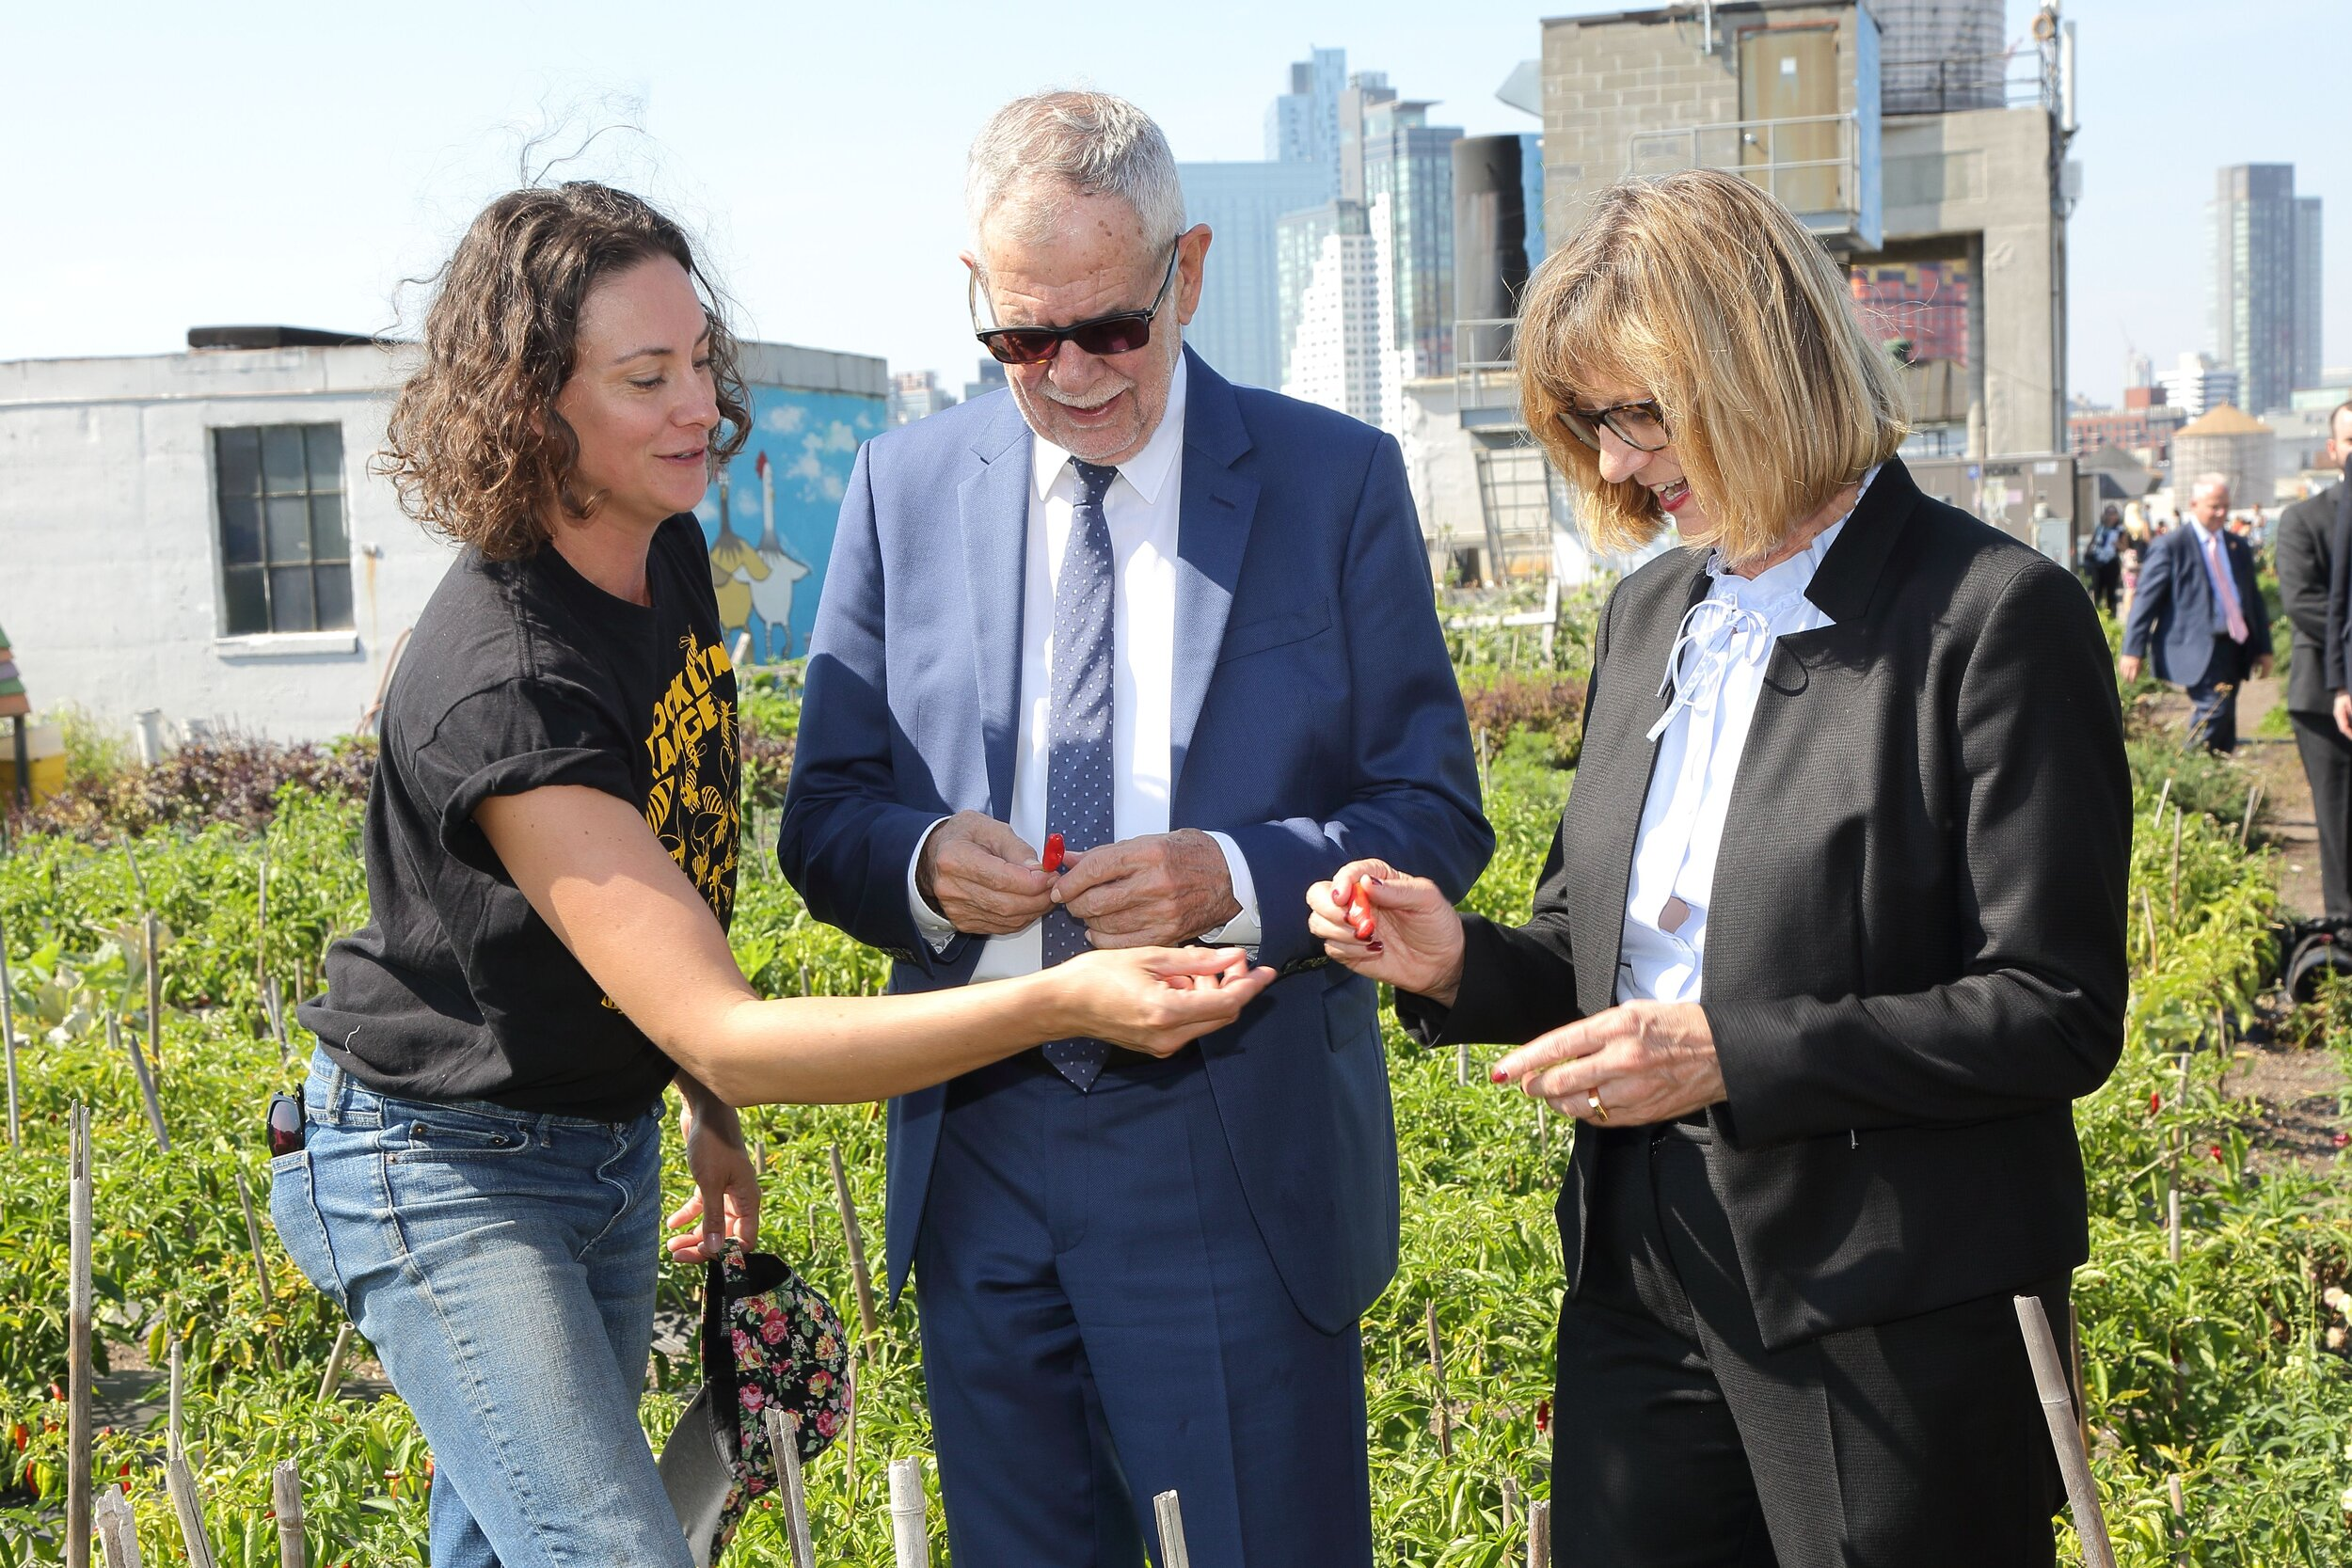 Federal President Alexander Van der Bellen and Federal Minister for the Environment Maria Patek visit a rooftop garden in Brooklyn, NY.    Photo: Anton Brookes